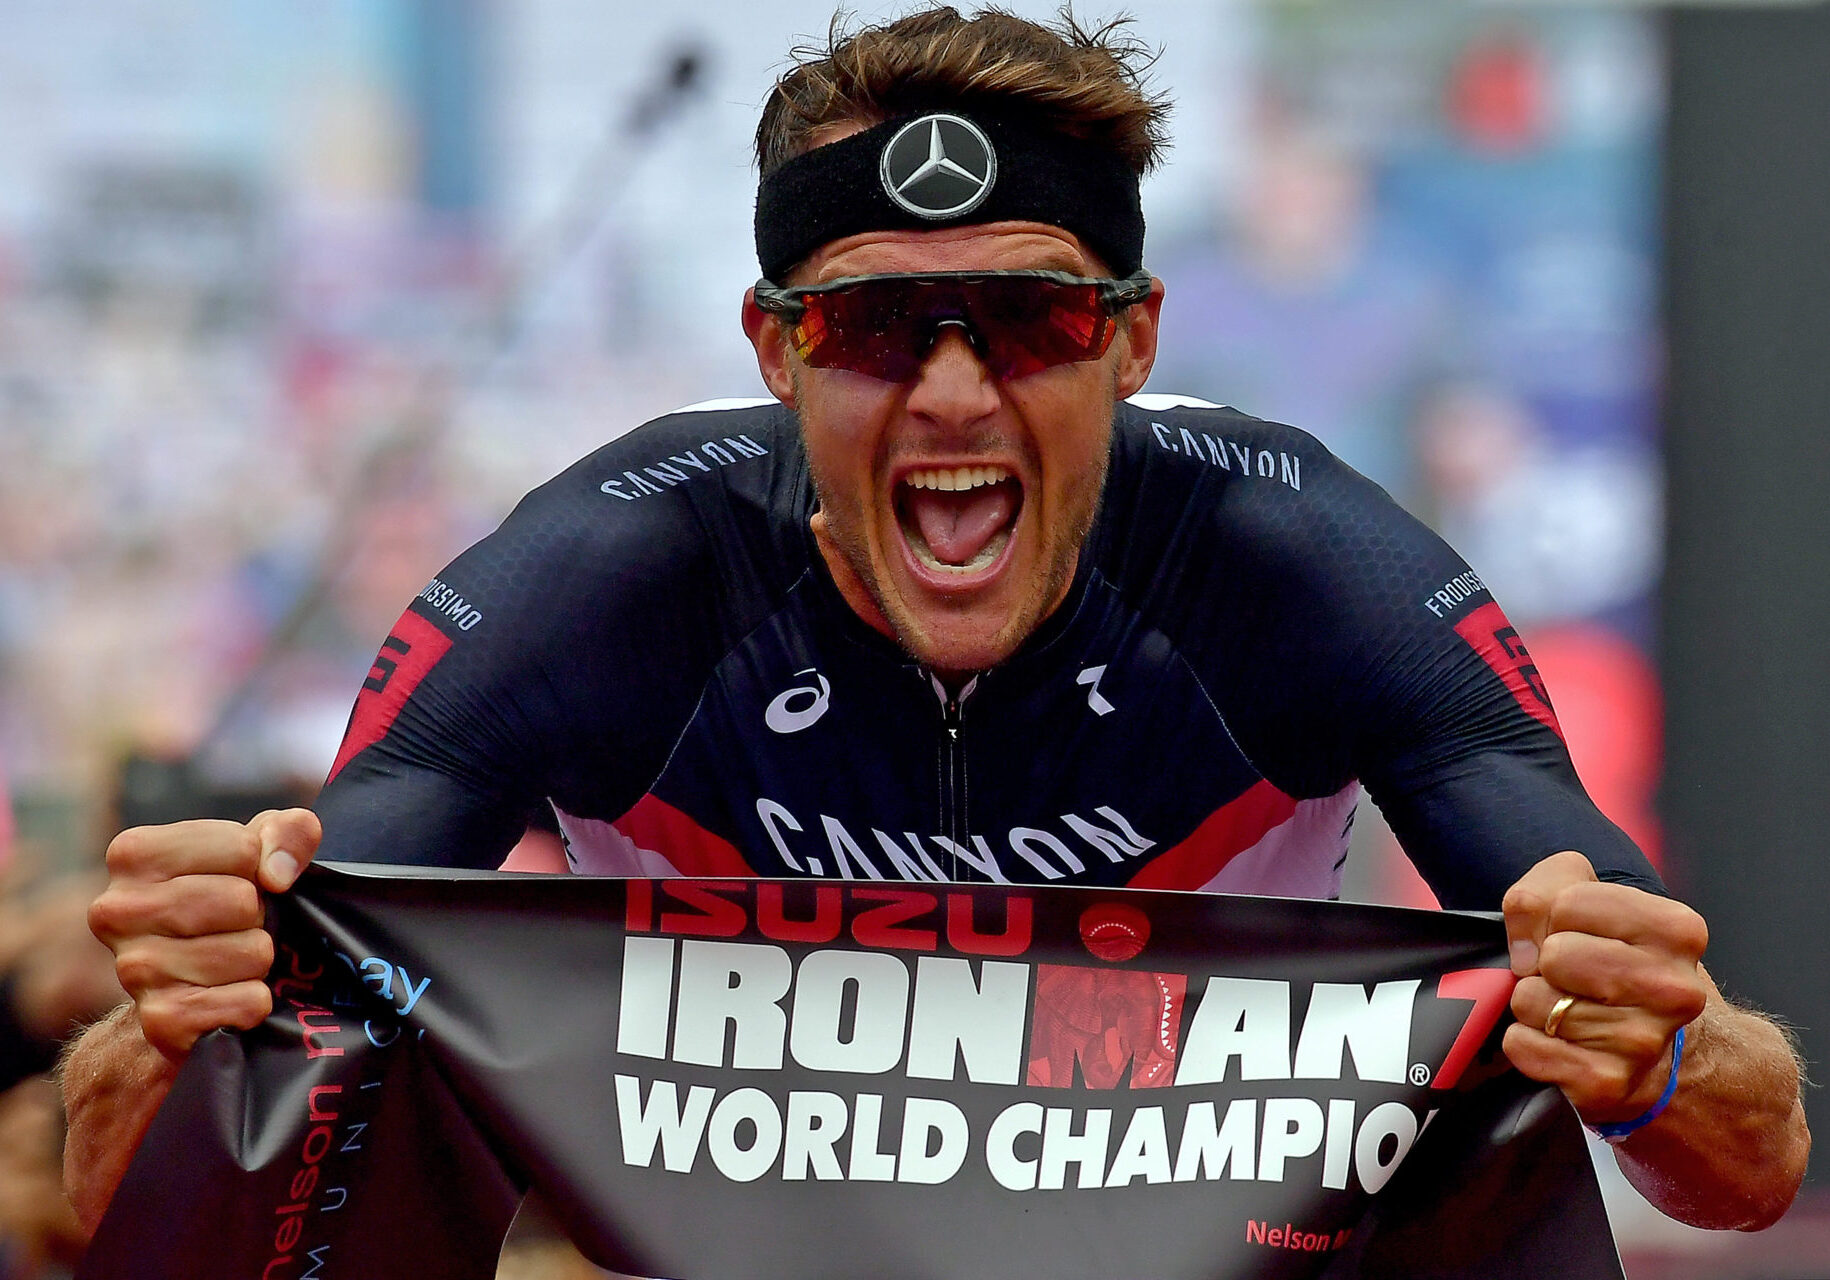 PORT ELIZABETH - SEPTEMBER 2:  Jan Frodeno of Germany wins the the Isuzu IRONMAN 70.3 World Championship Men in Port Elizabeth, South Africa on September 2, 2018. Over 4,500 athletes from over 100 countries will be represented in this years 70.3 World Championship. (Photo by Donald Miralle/Getty Images for IRONMAN).